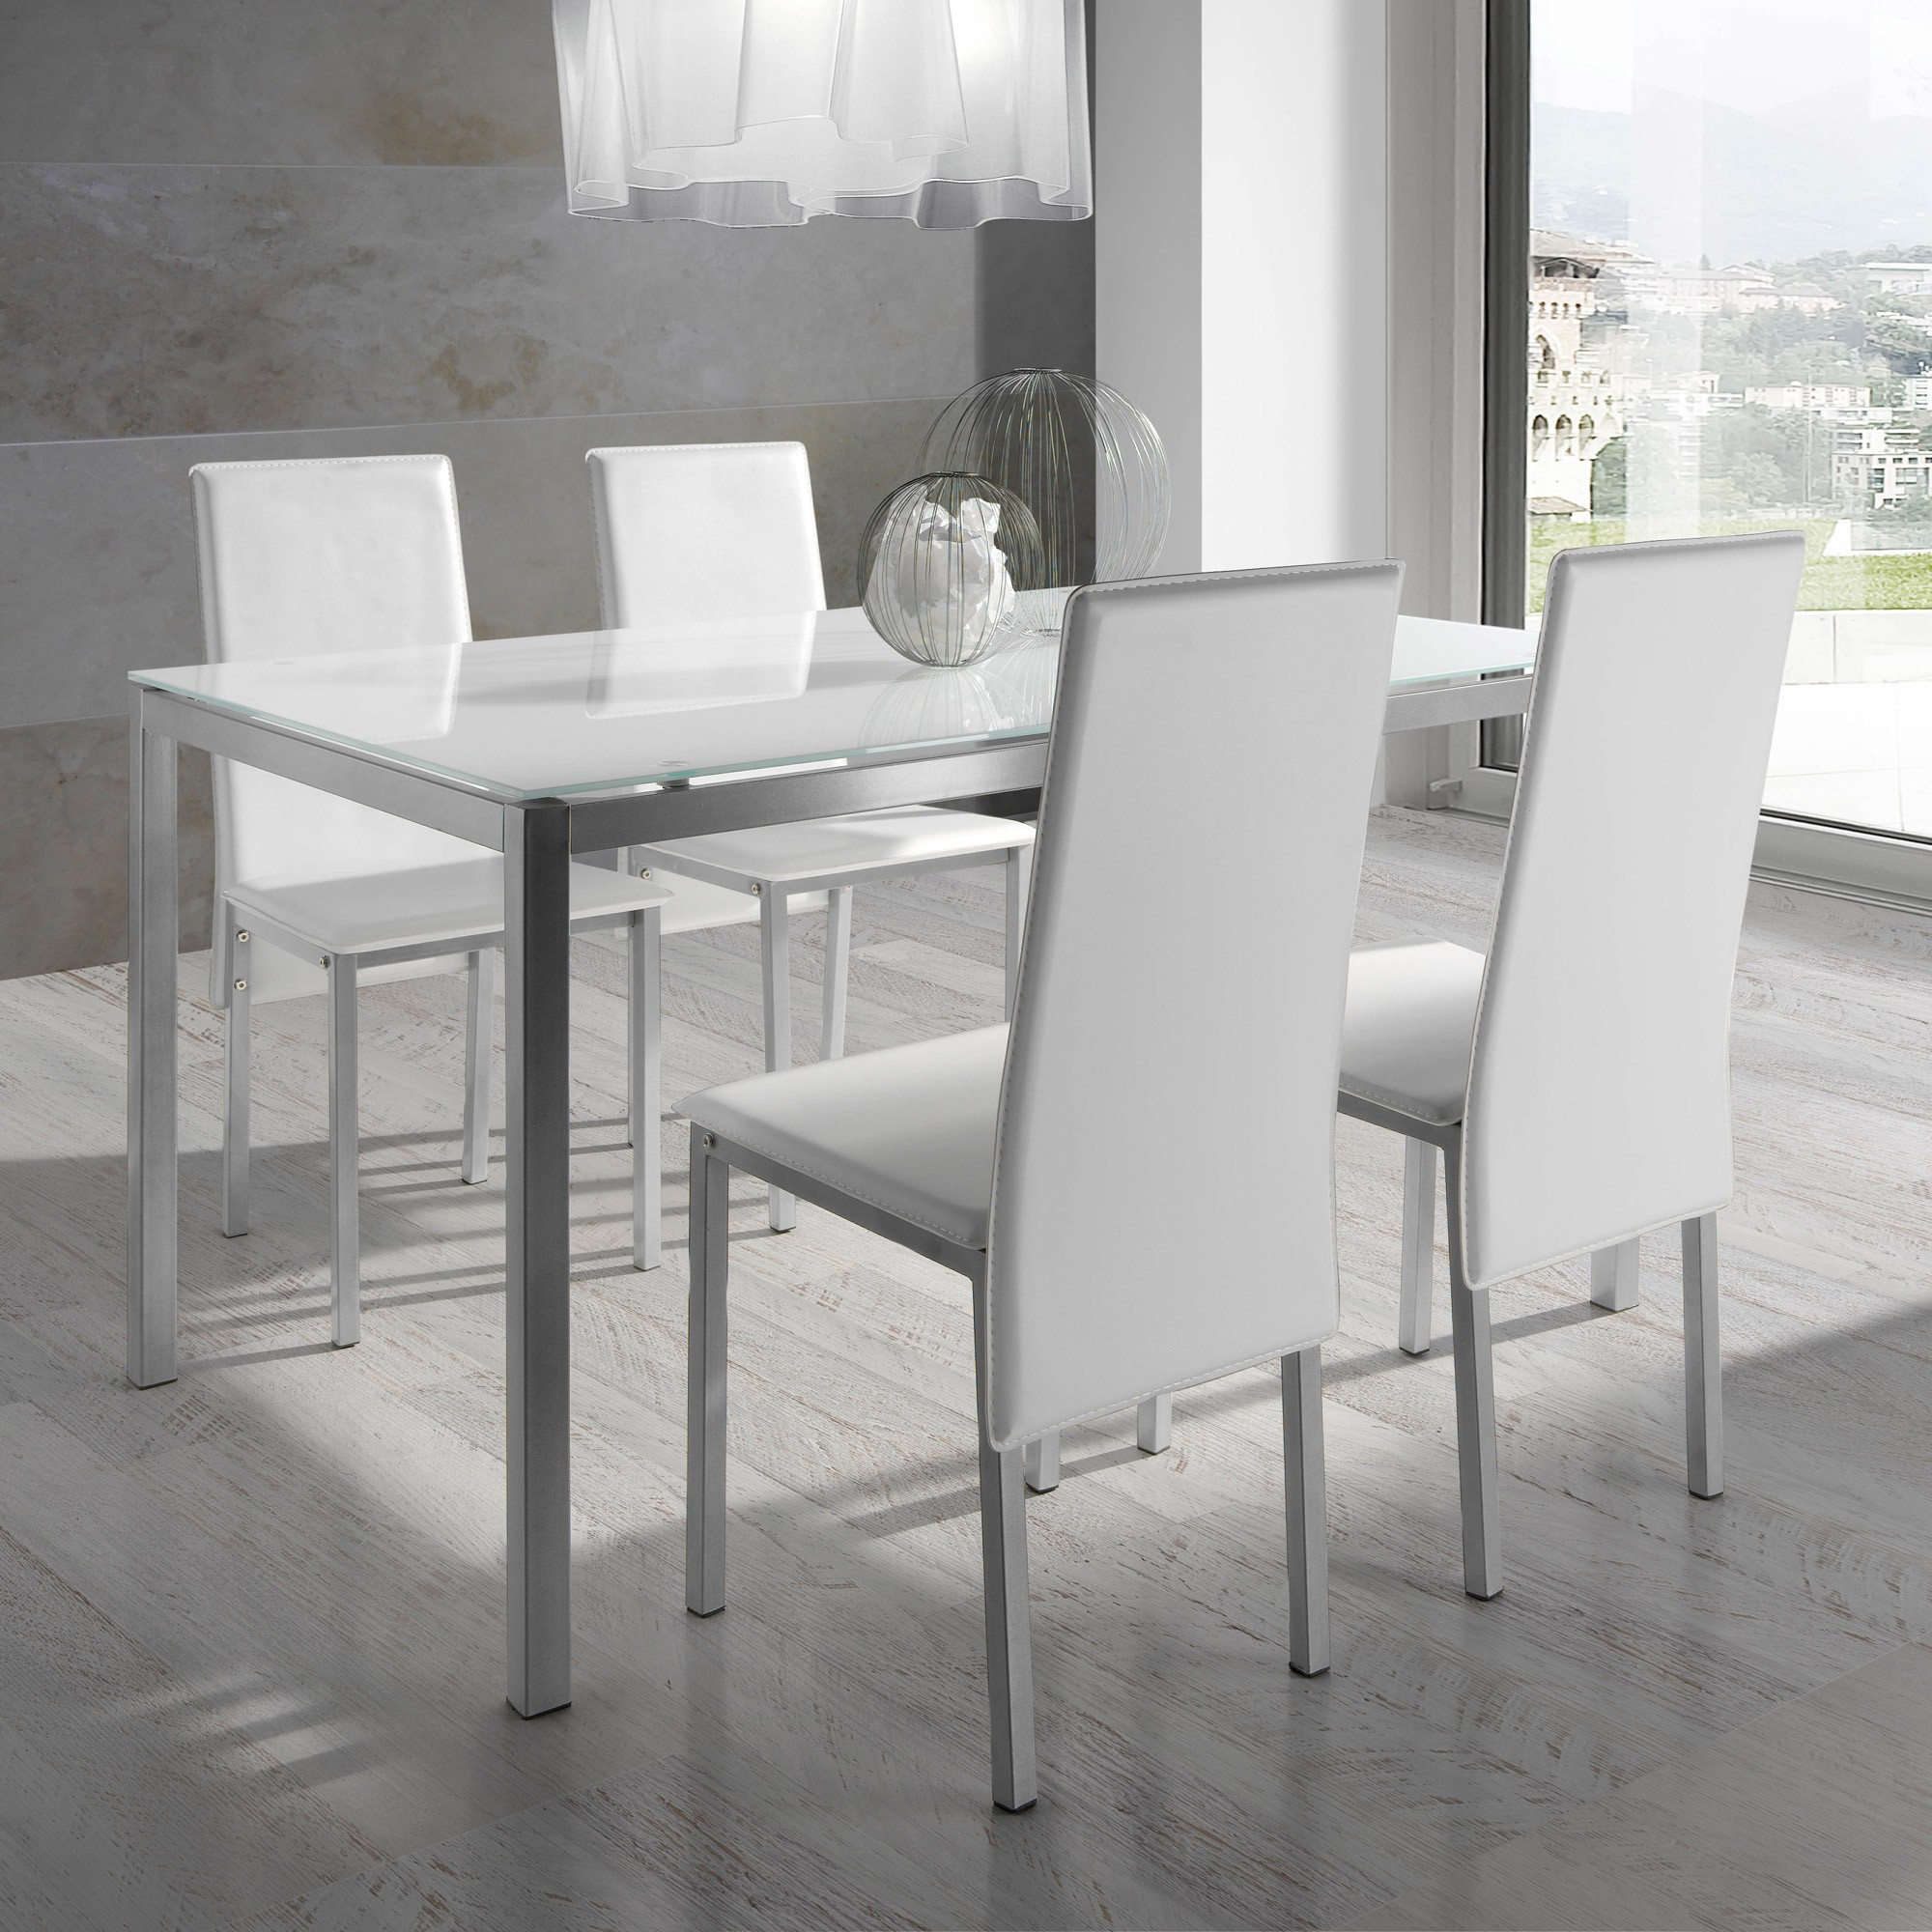 Conforama chaise salle manger fabulous table salle a for Table chaise salle a manger conforama